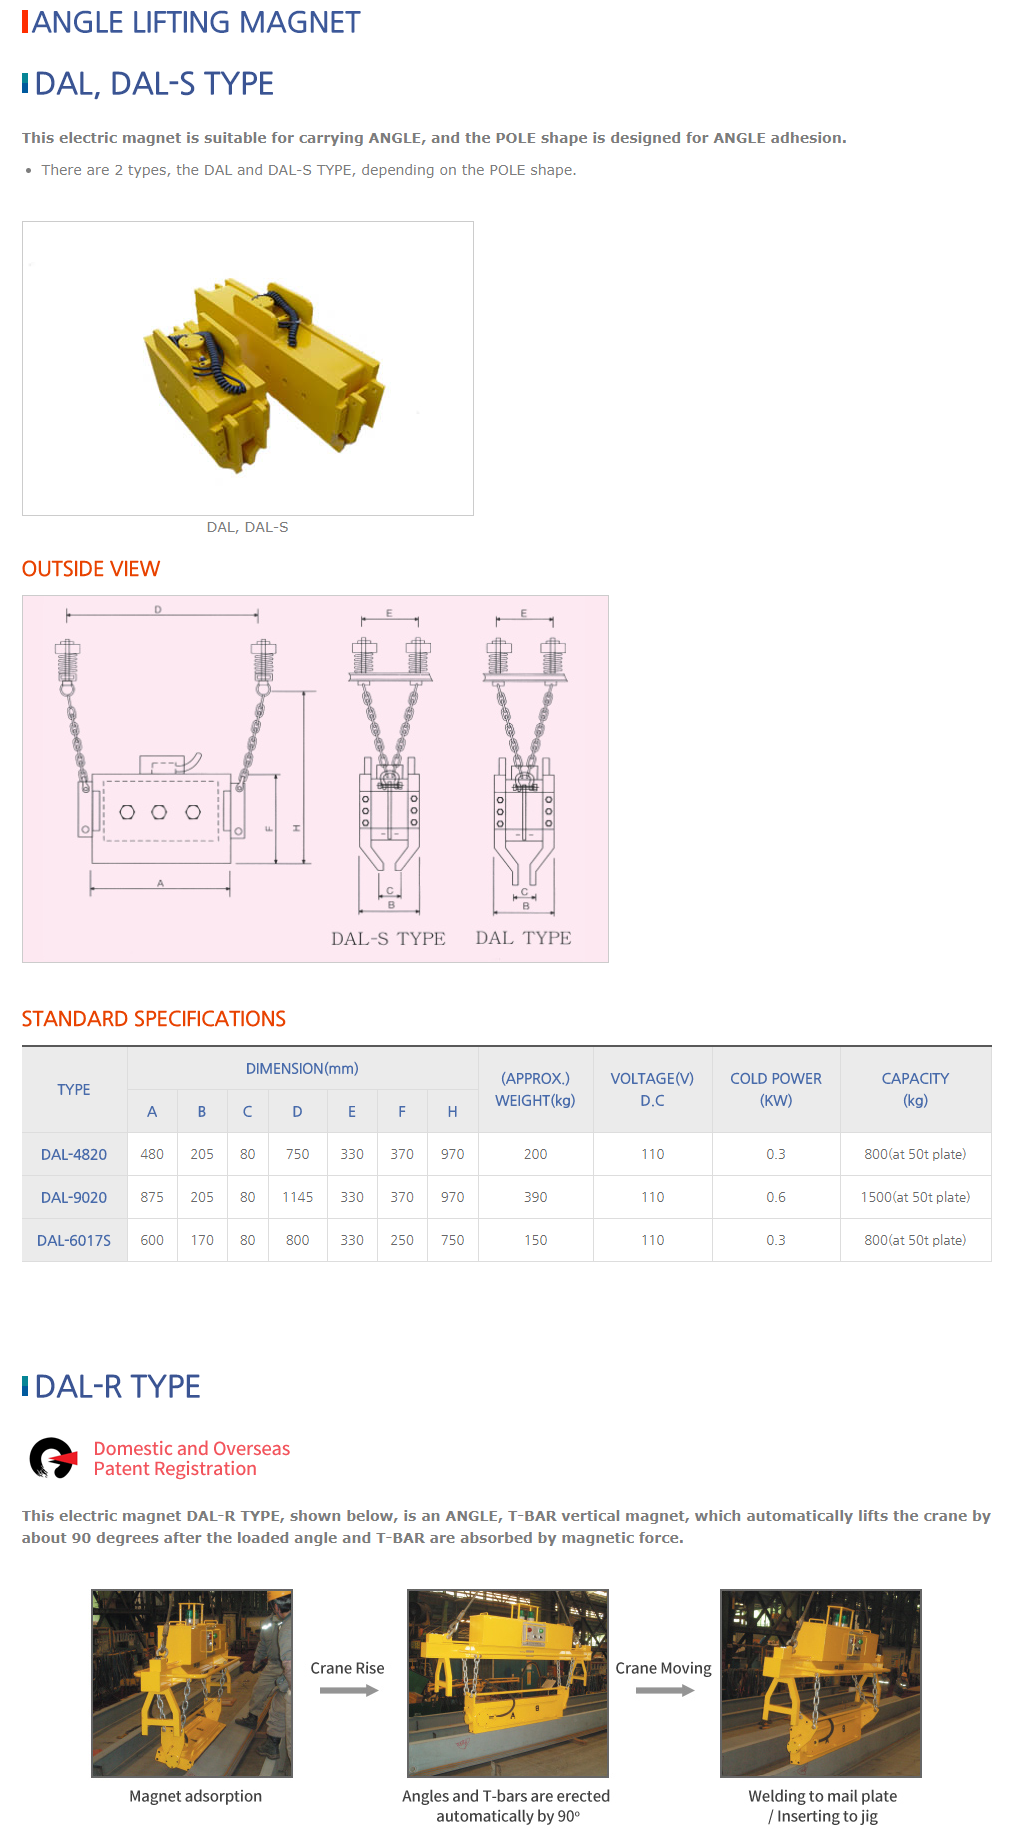 DAESUNG MARGNET Angle Lifting Magnet DAL/DAL-S Type